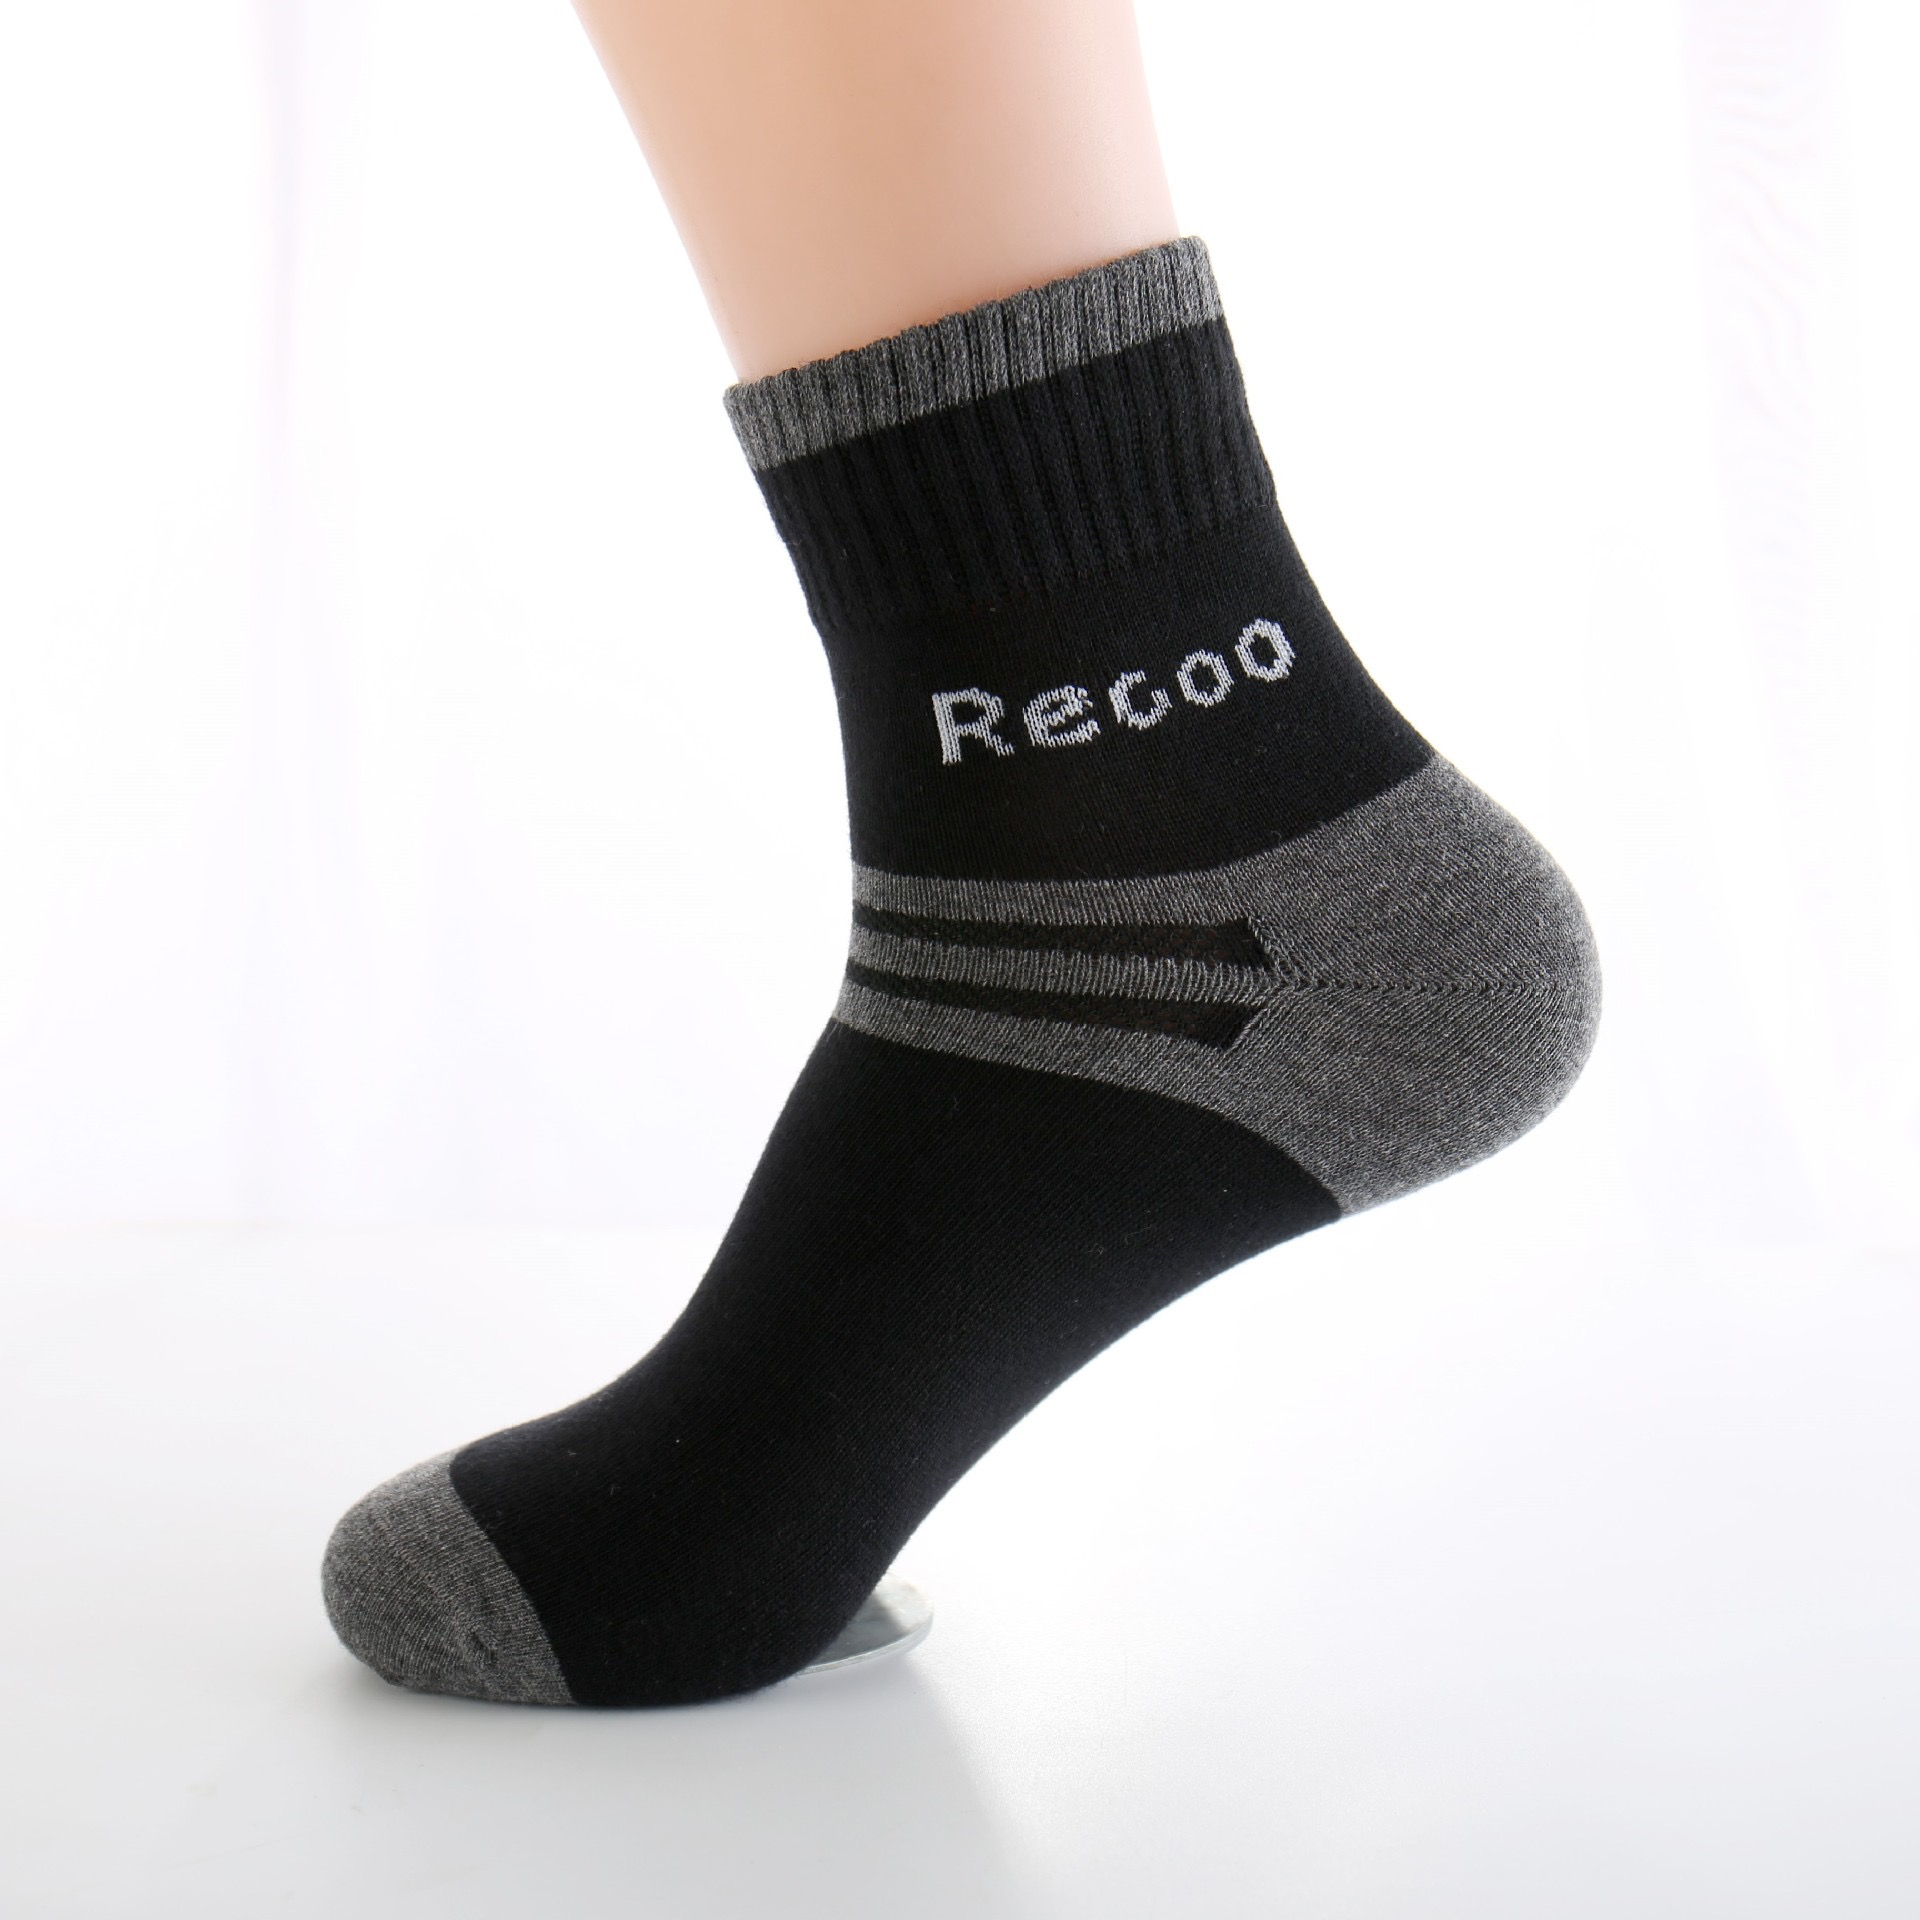 Men's sports socks autumn and winter striped cotton socks sweat-absorbent breathable men's socks suitable for daily and outdoor